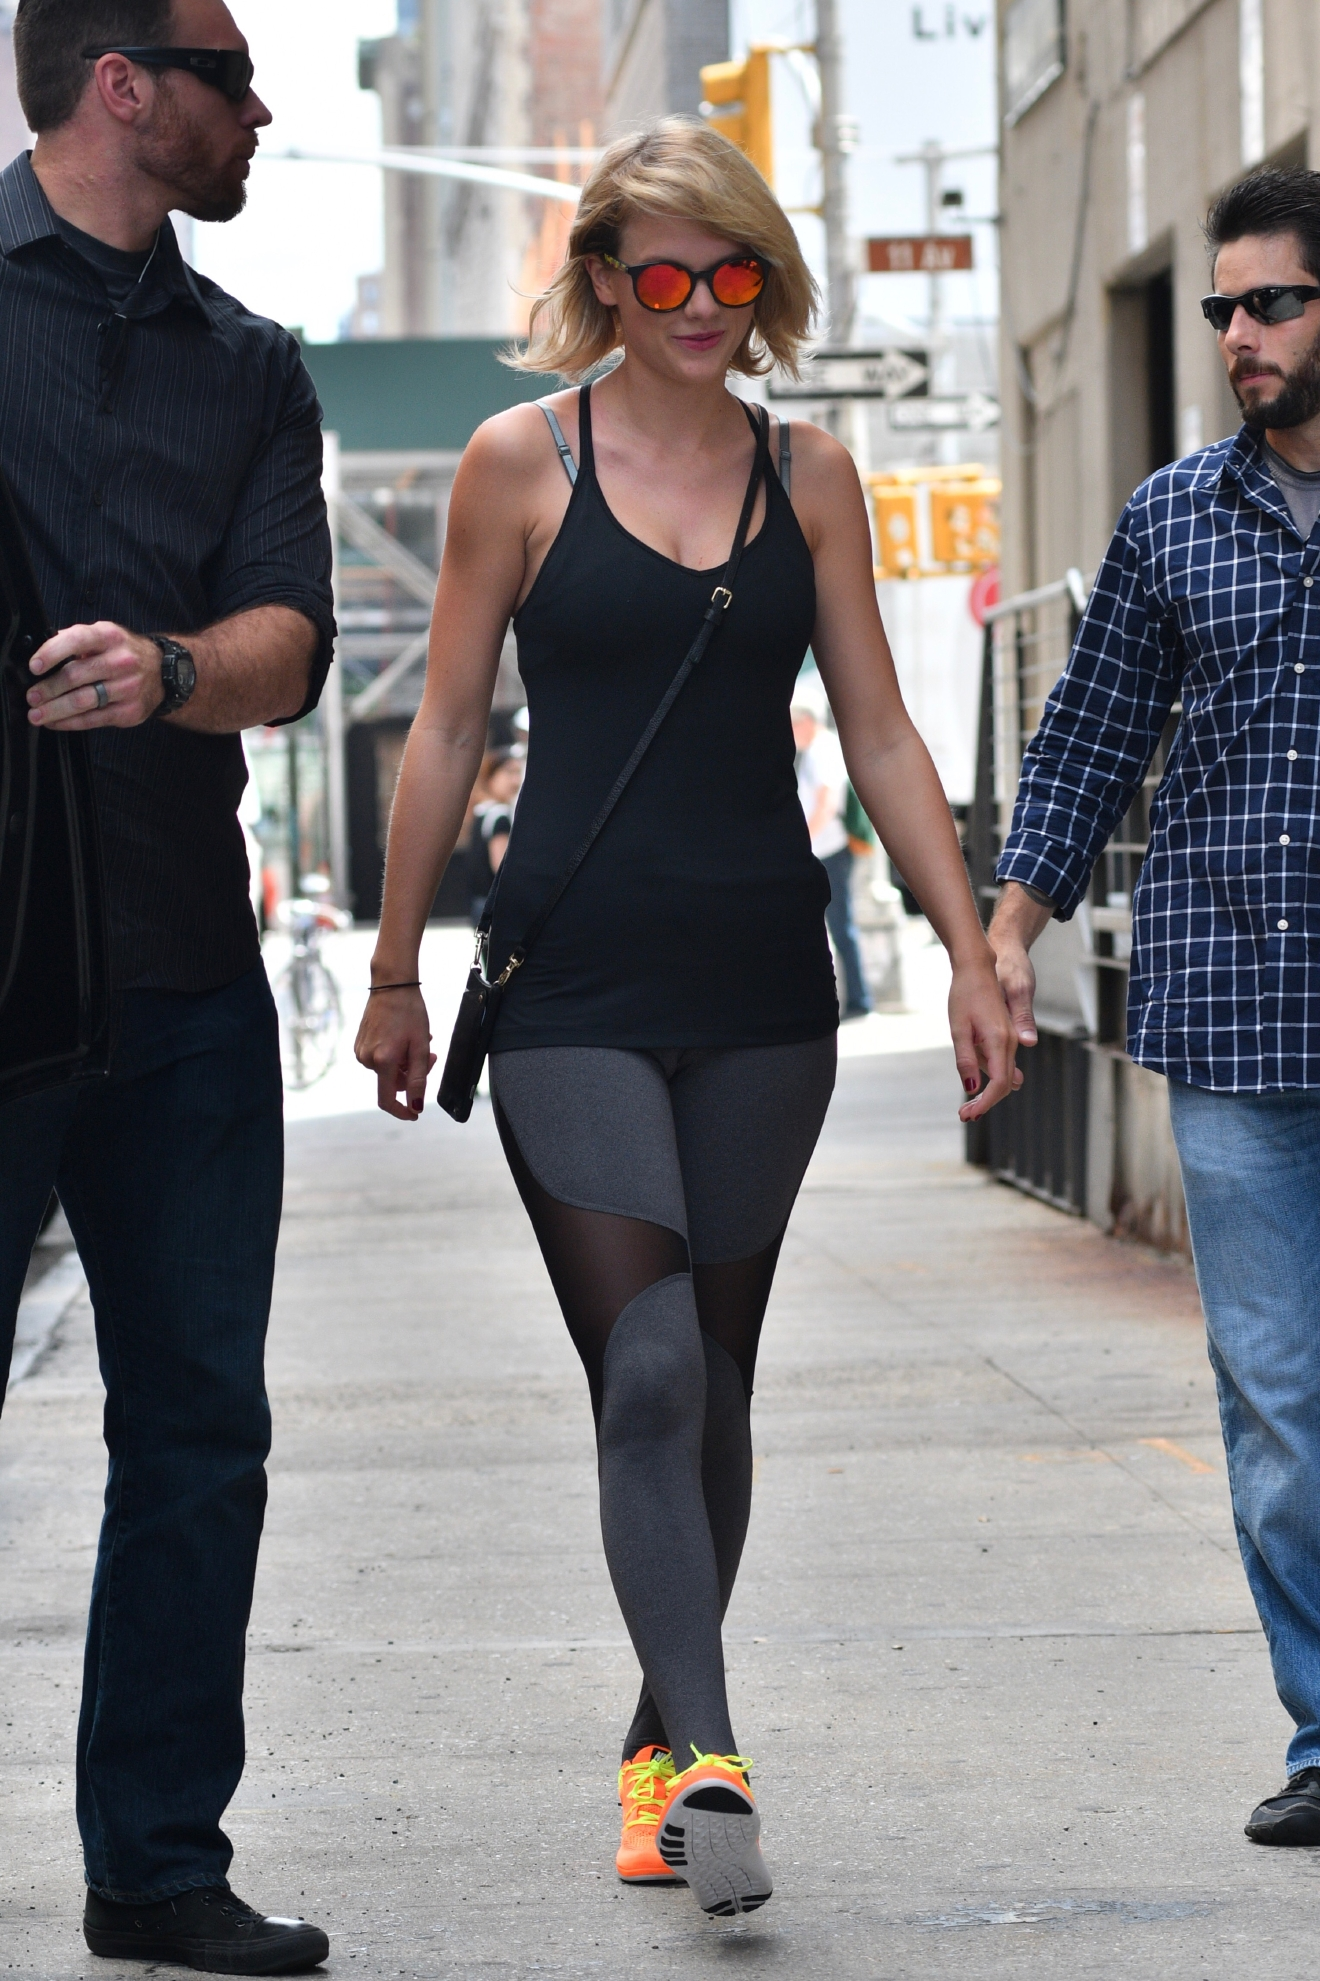 Taylor Swift leaving her gym in New York on Aug. 26, 2016. (TNYF/WENN.com)